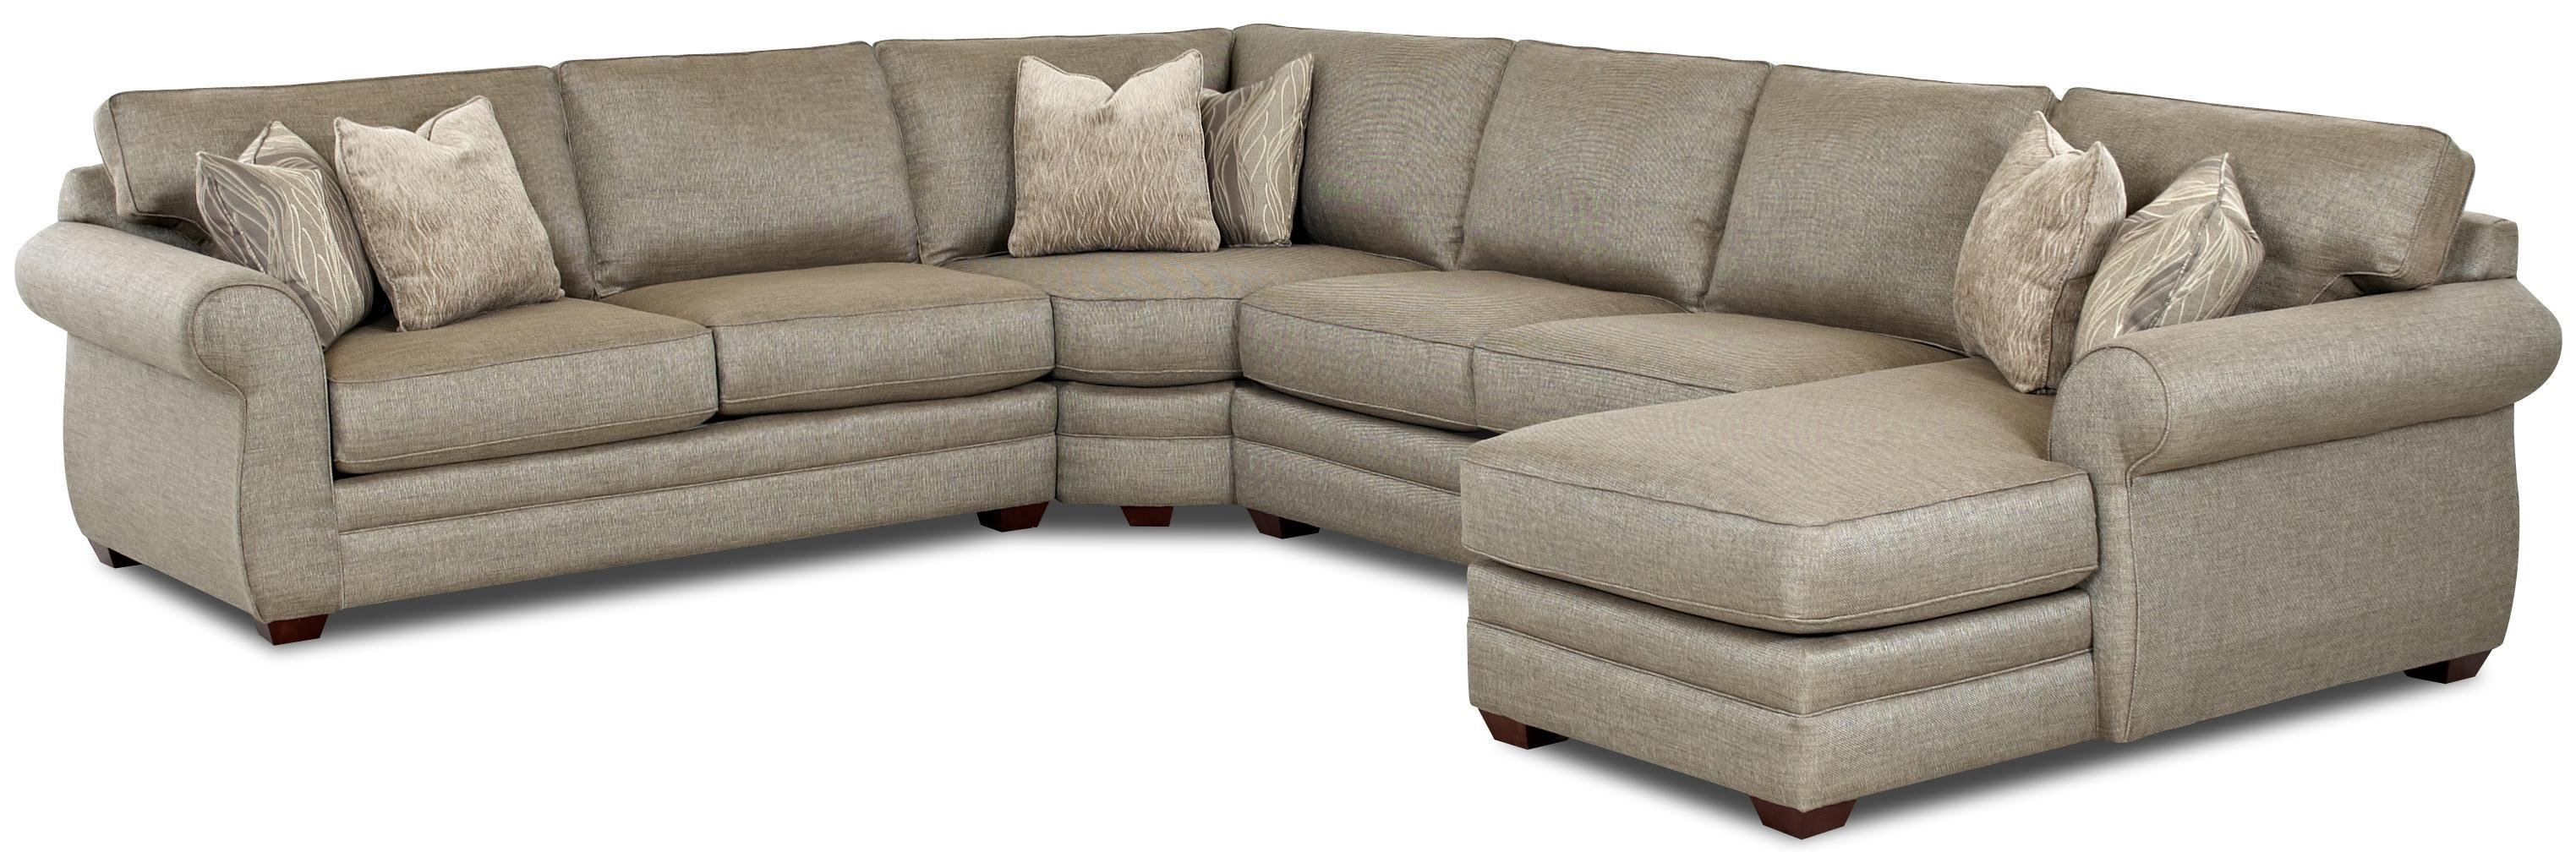 Transitional Sectional Sofa With Right Chaise And Full Sleeper Regarding Sectional Sofas With Sleeper And Chaise (View 7 of 21)